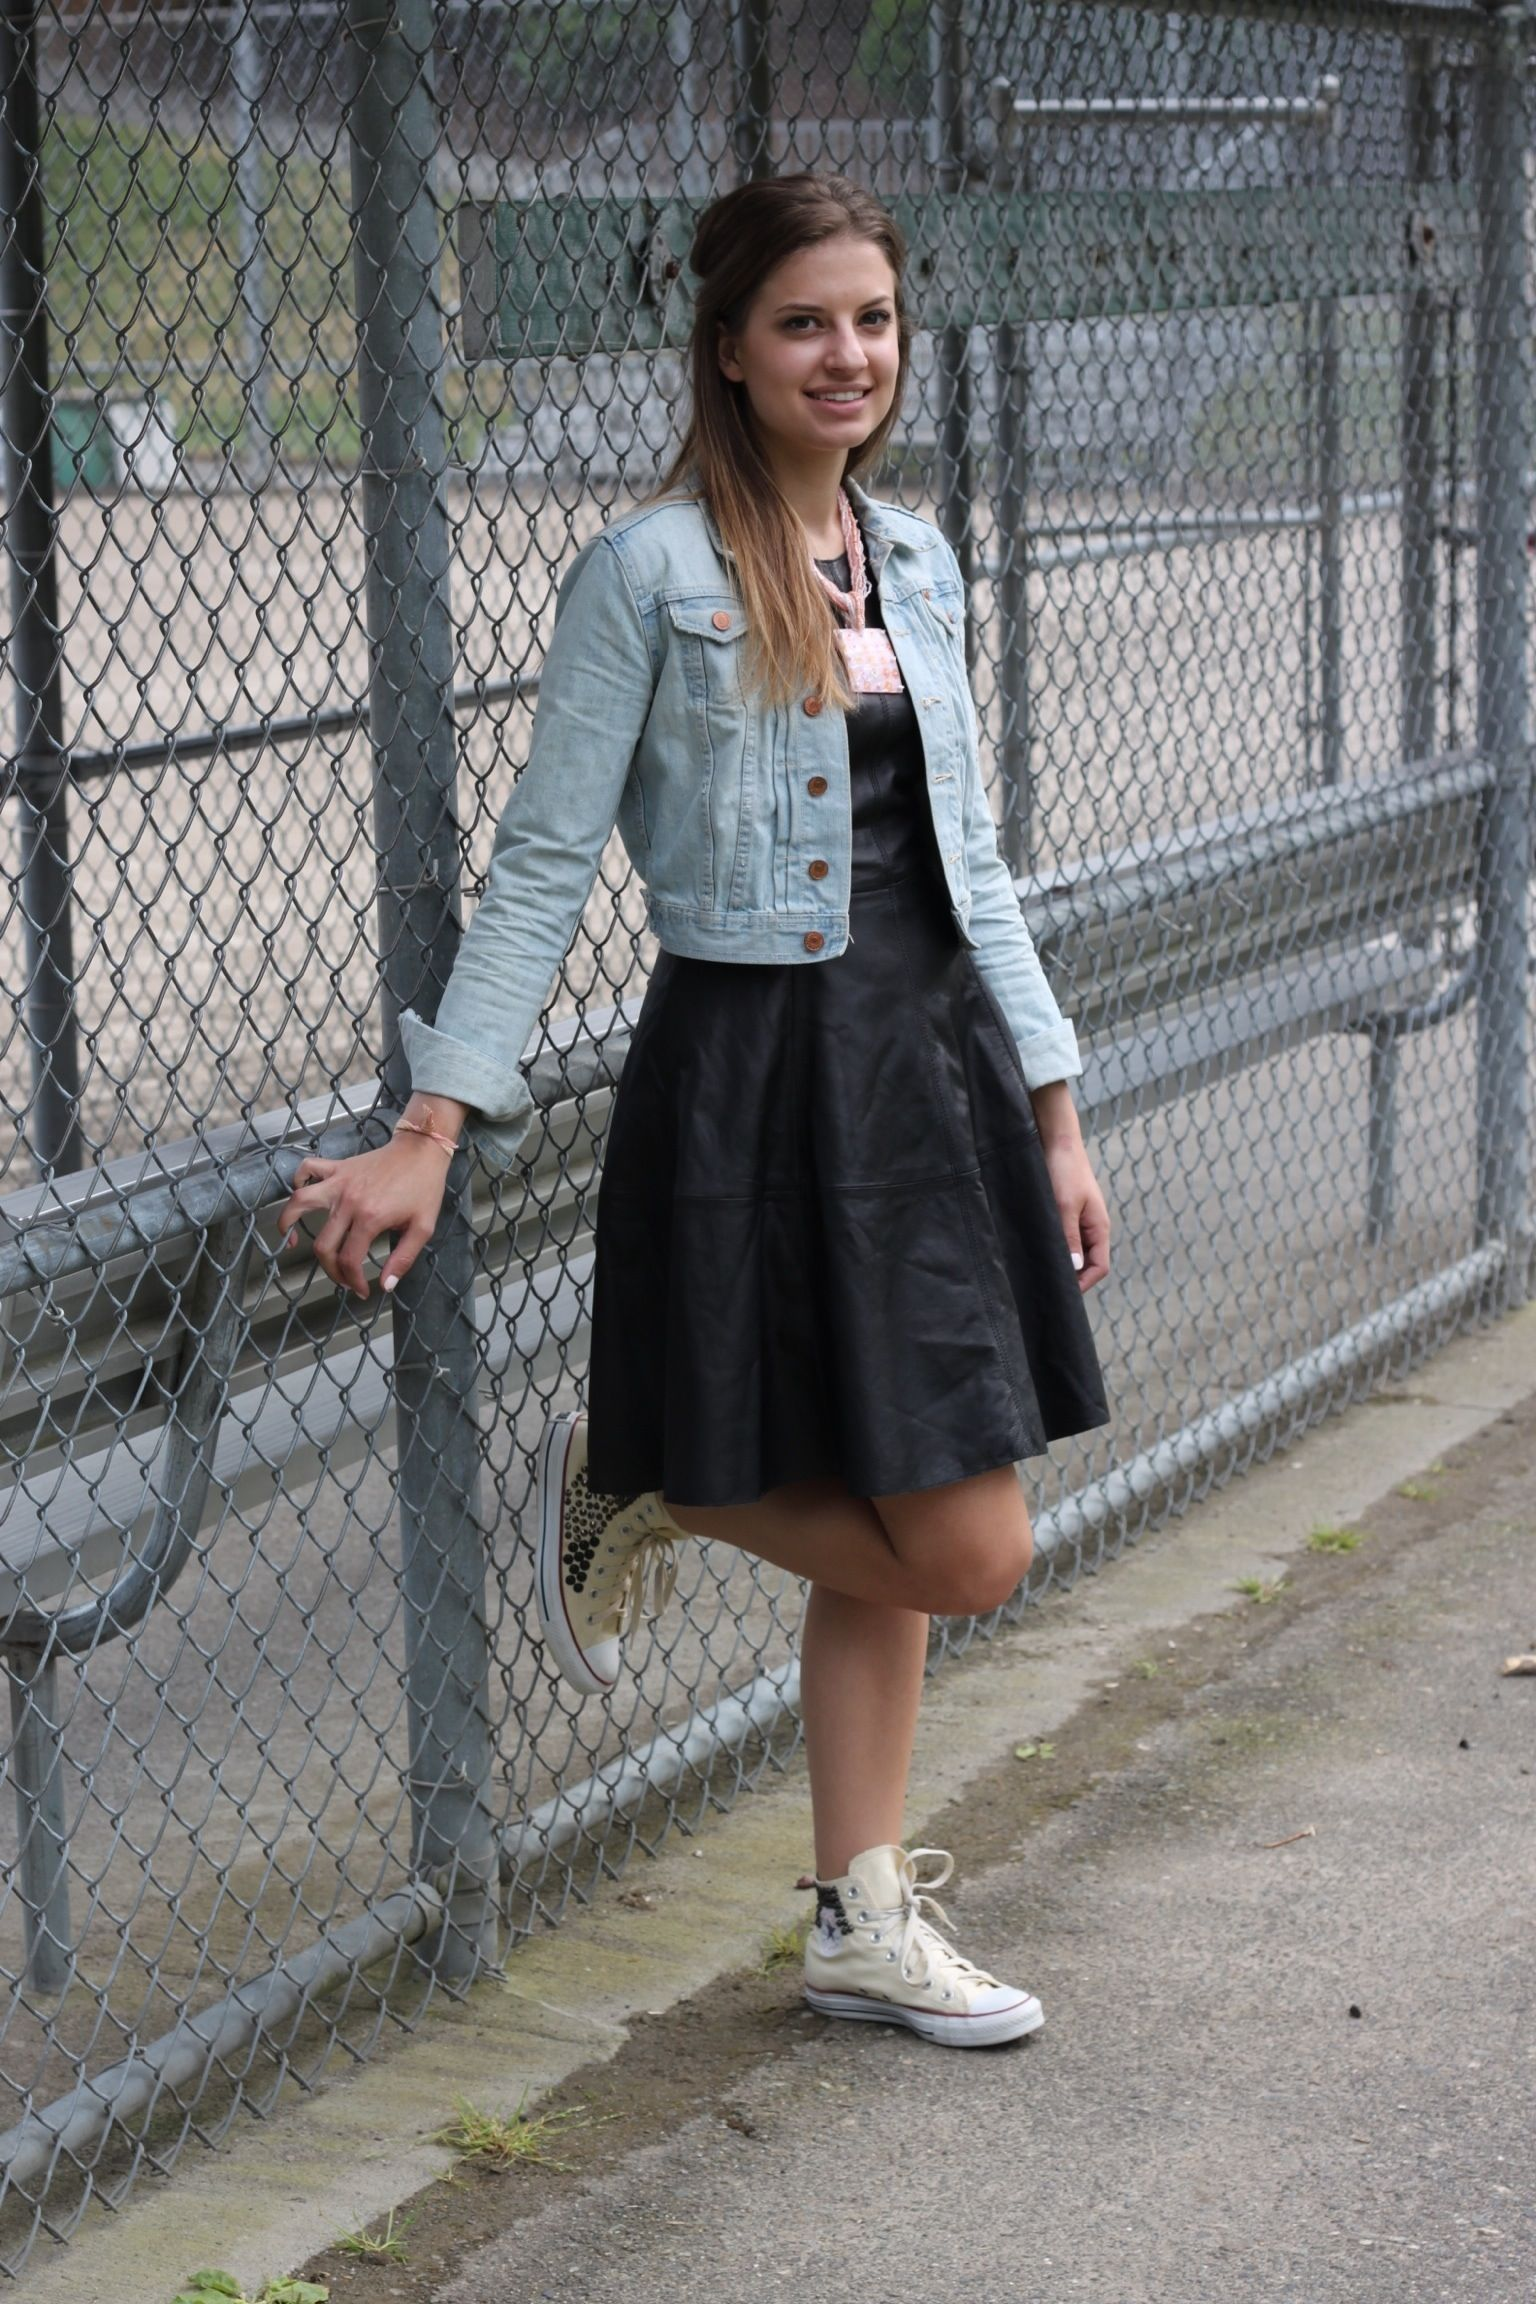 casual black dress outfit - Google Search | Black Dresses ...